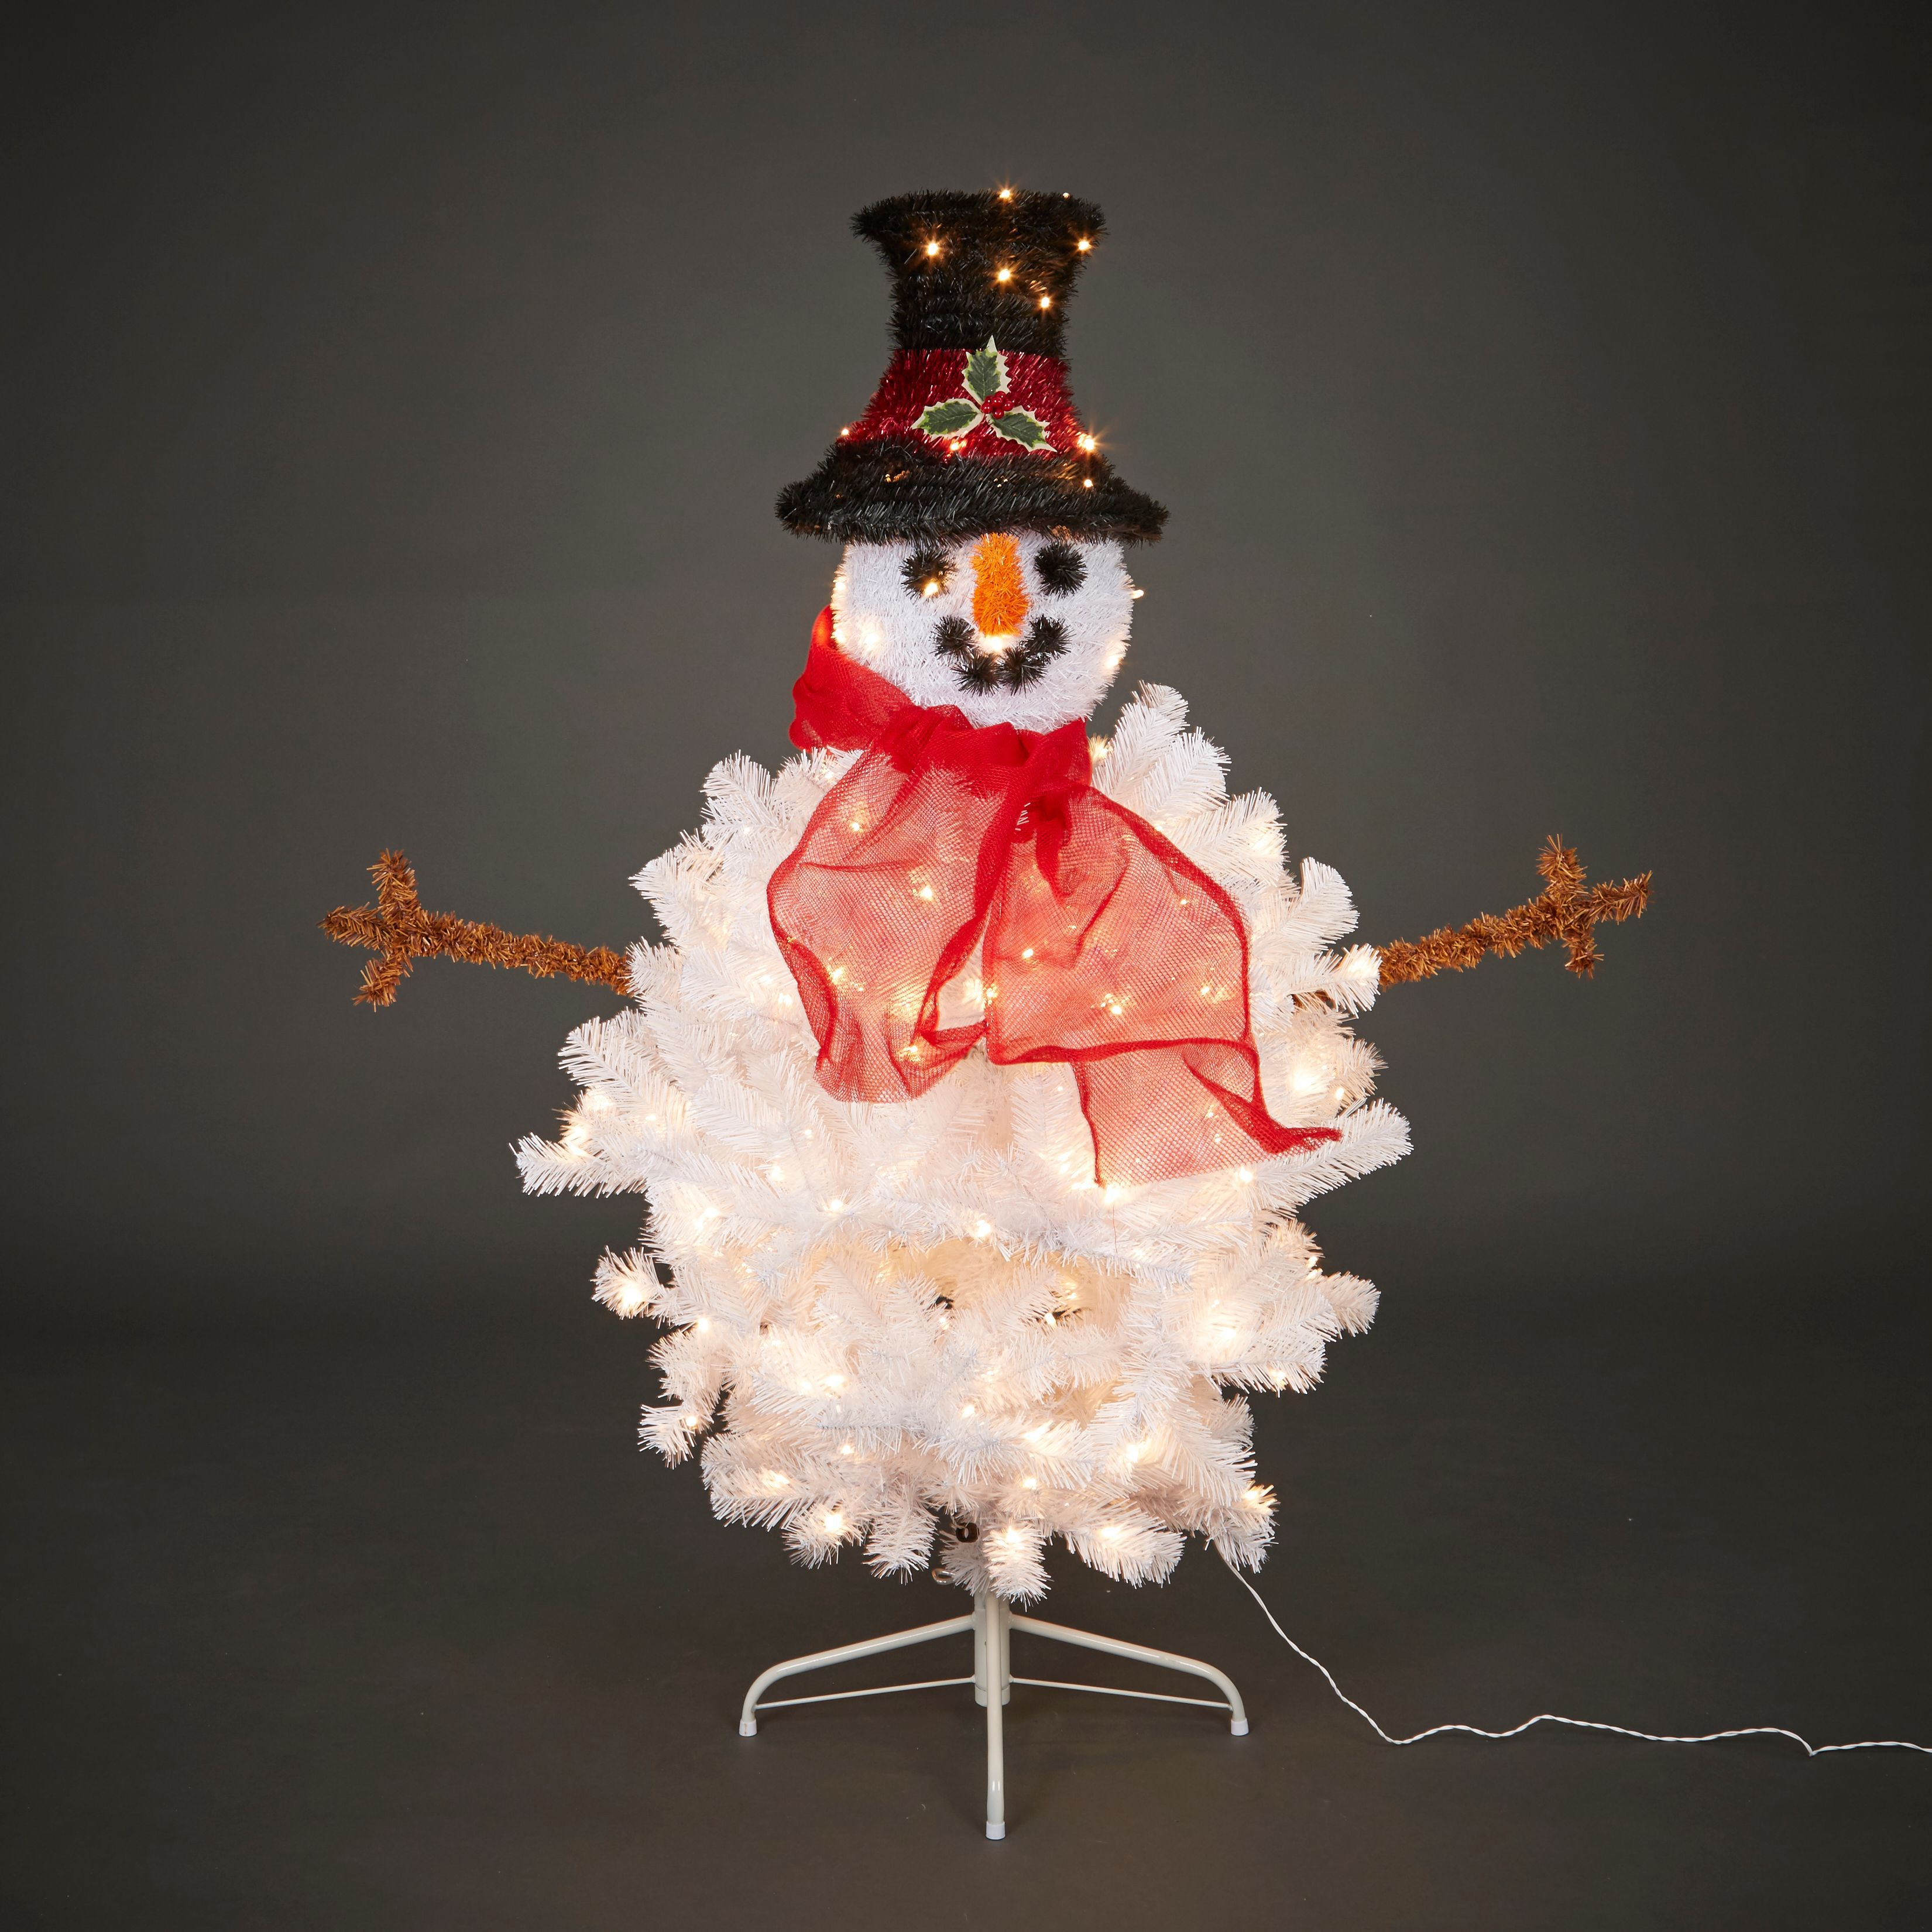 Decorate Christmas Tree Like Snowman: 4ft 6In Snowman Tree White Pre-Lit Christmas Tree